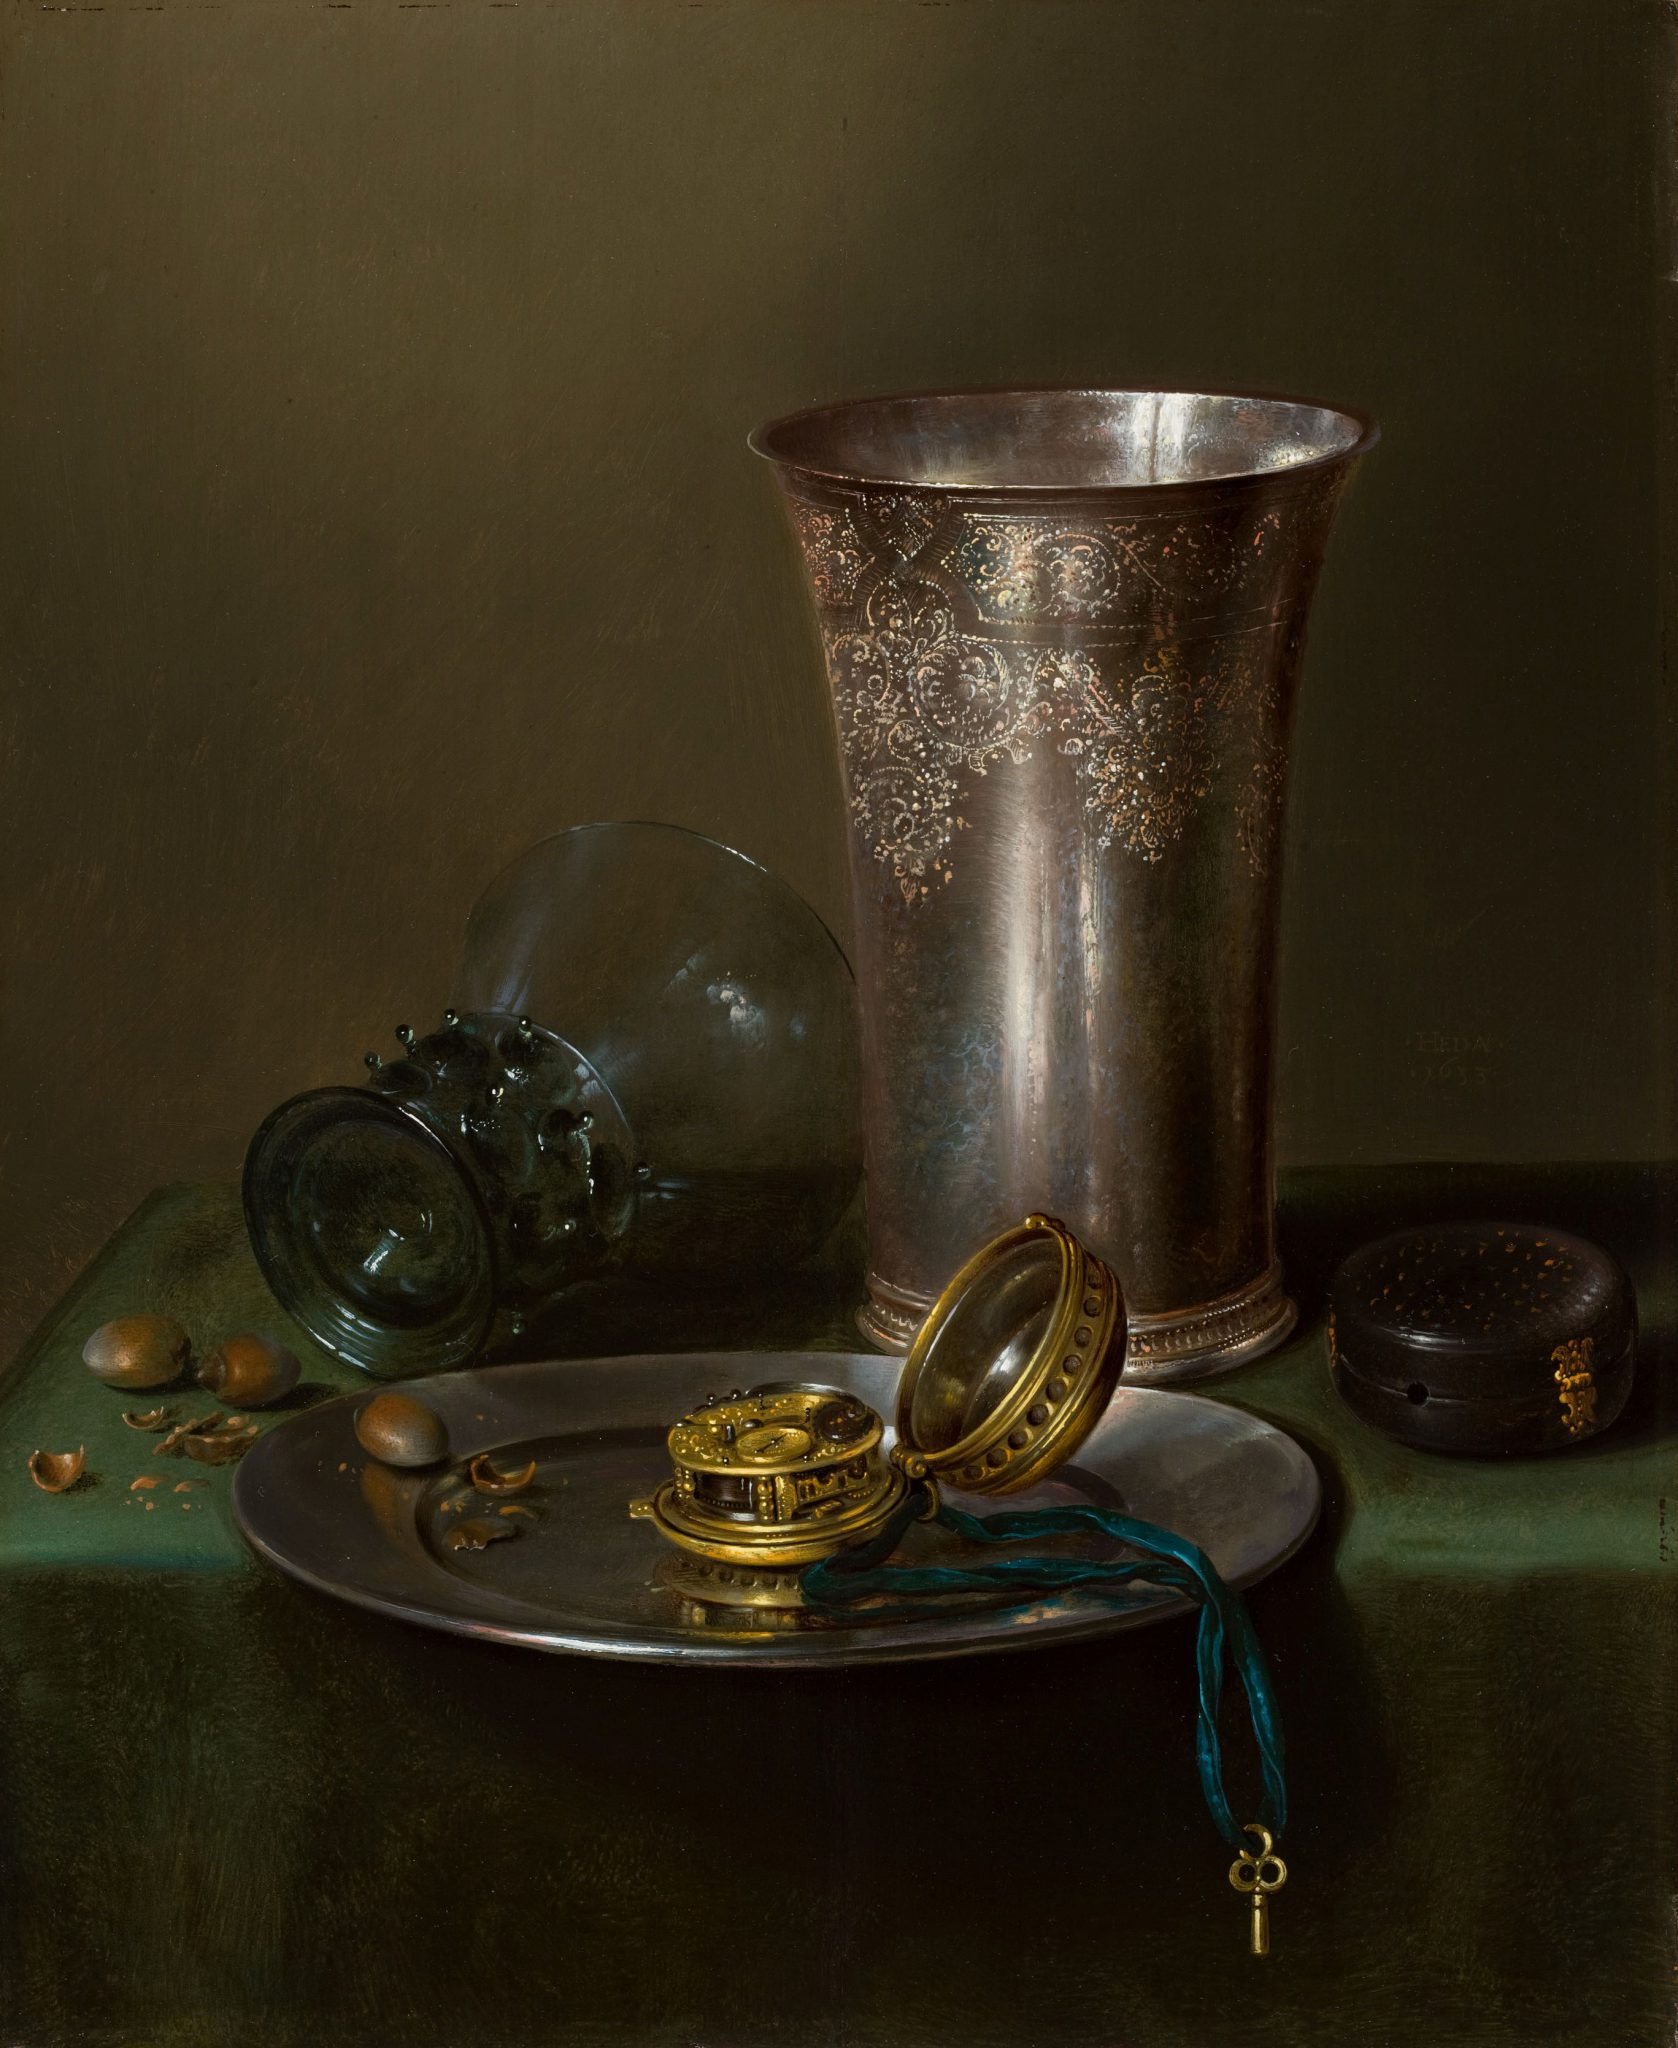 A still life with a silver goblet and a watch on a pewter plate